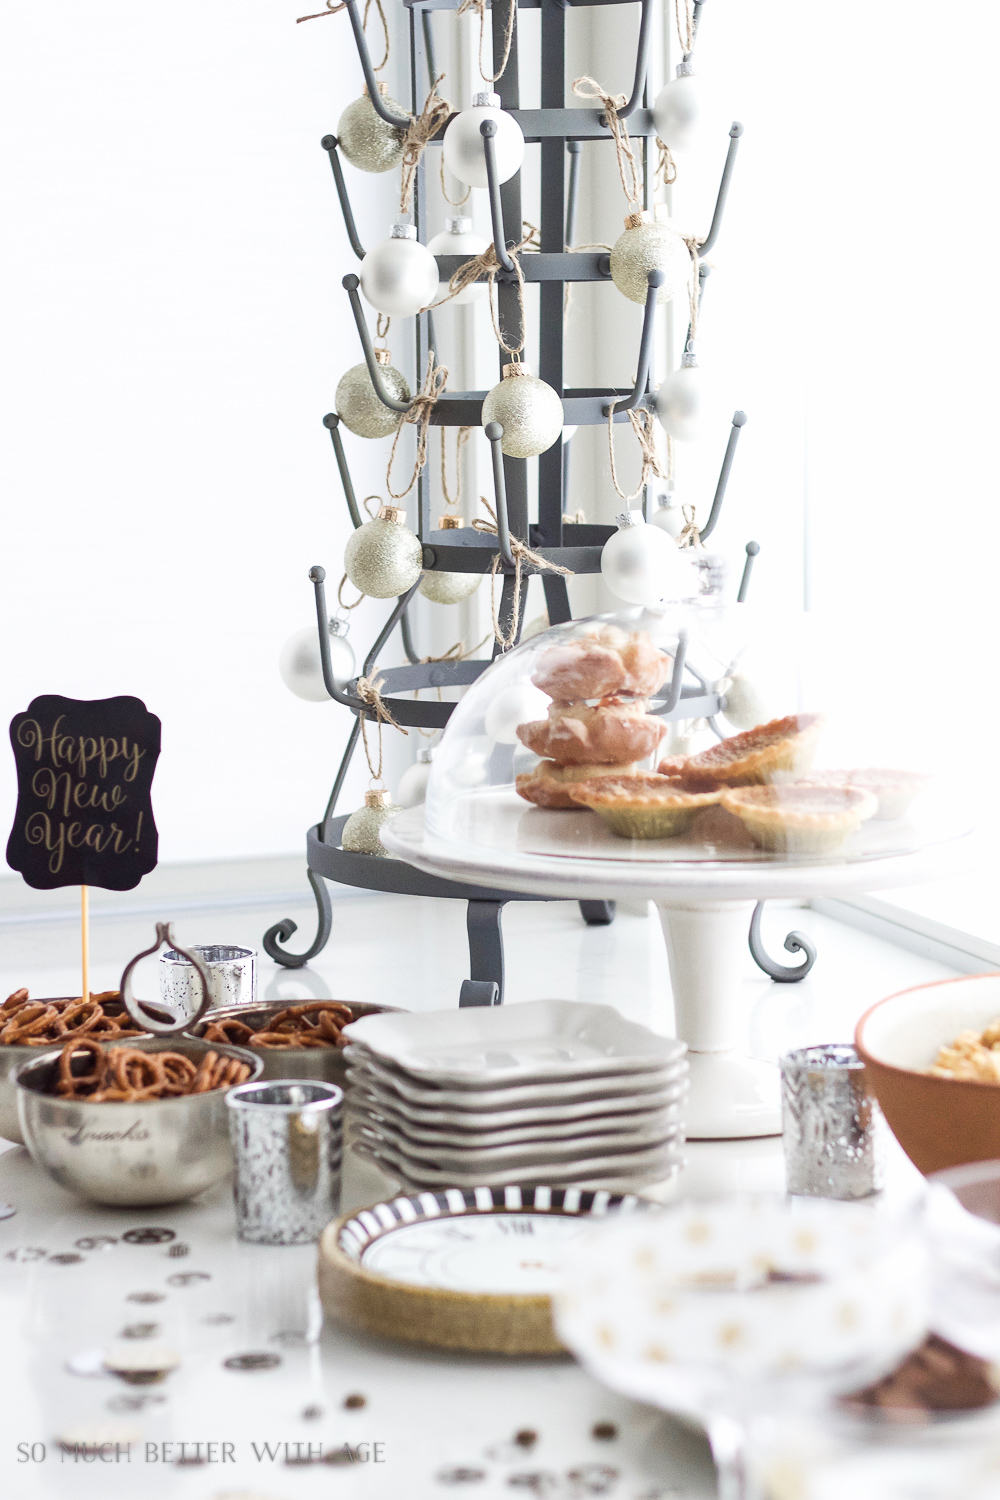 A New Year's Eve Party Bubbly Bar with Party Tips / yummy snacks on table - So Much Better With Age